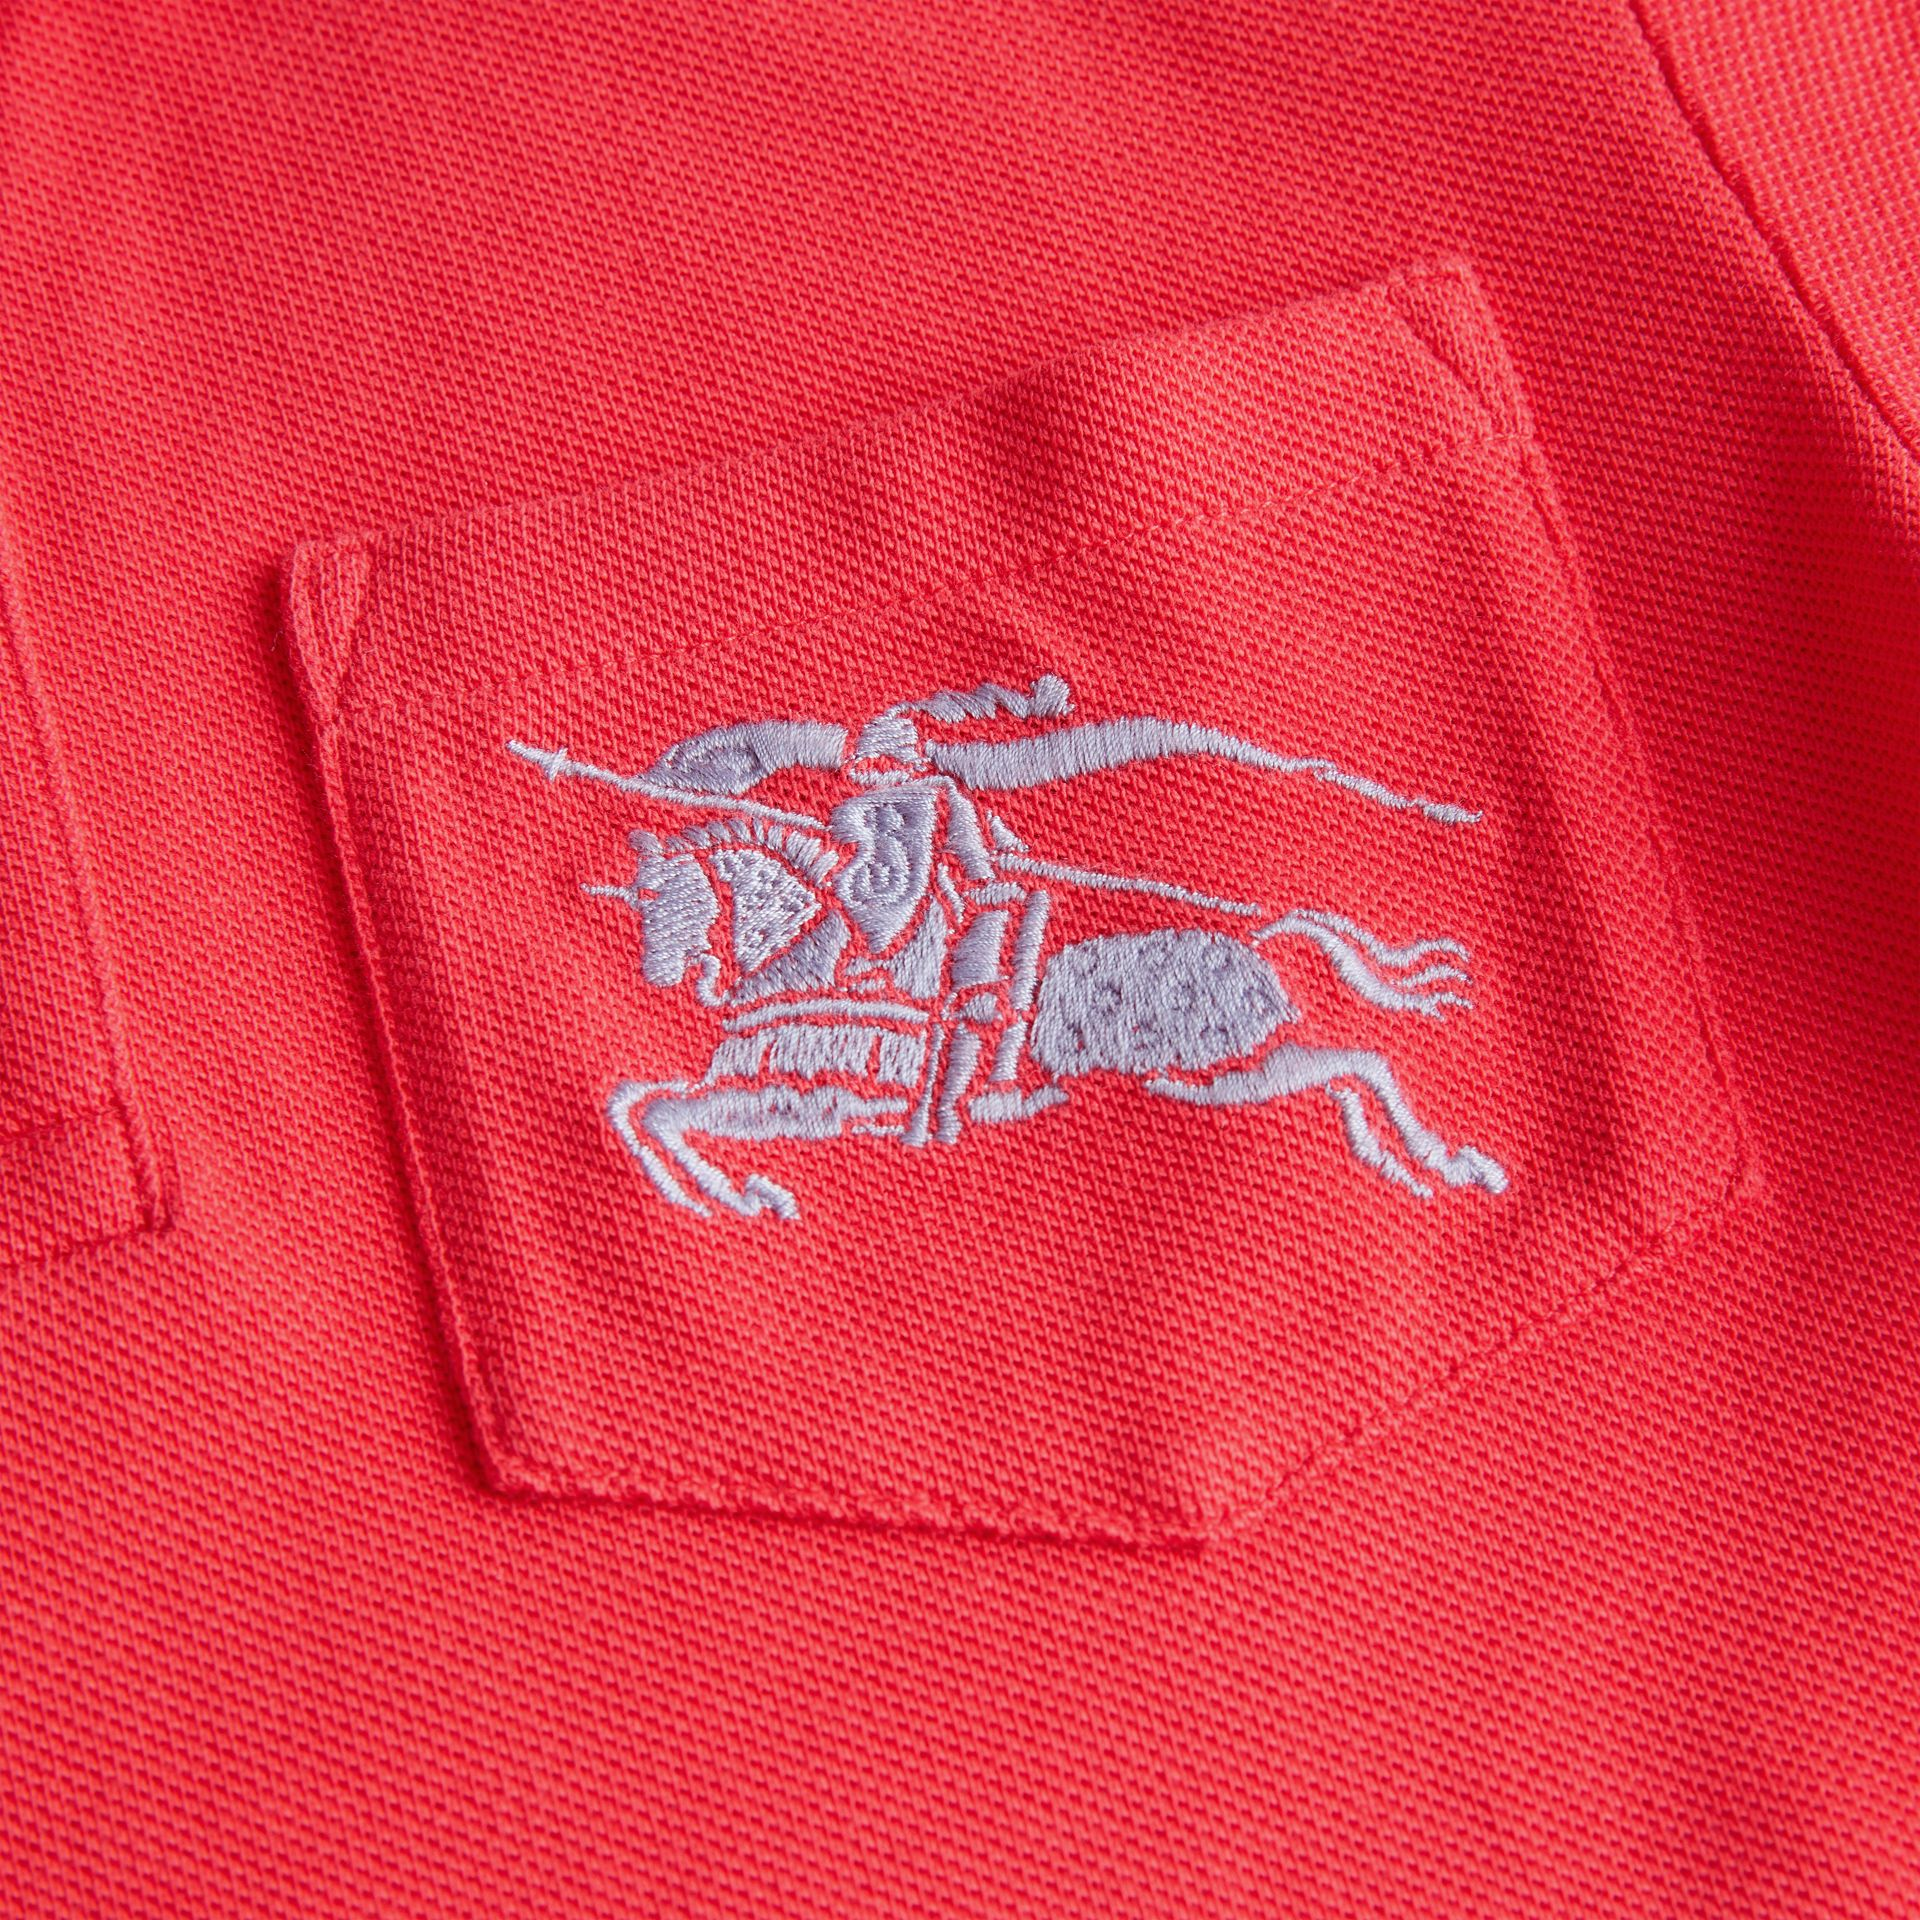 EKD Logo Cotton Piqué Polo Shirt in Bright Red | Burberry Australia - gallery image 1